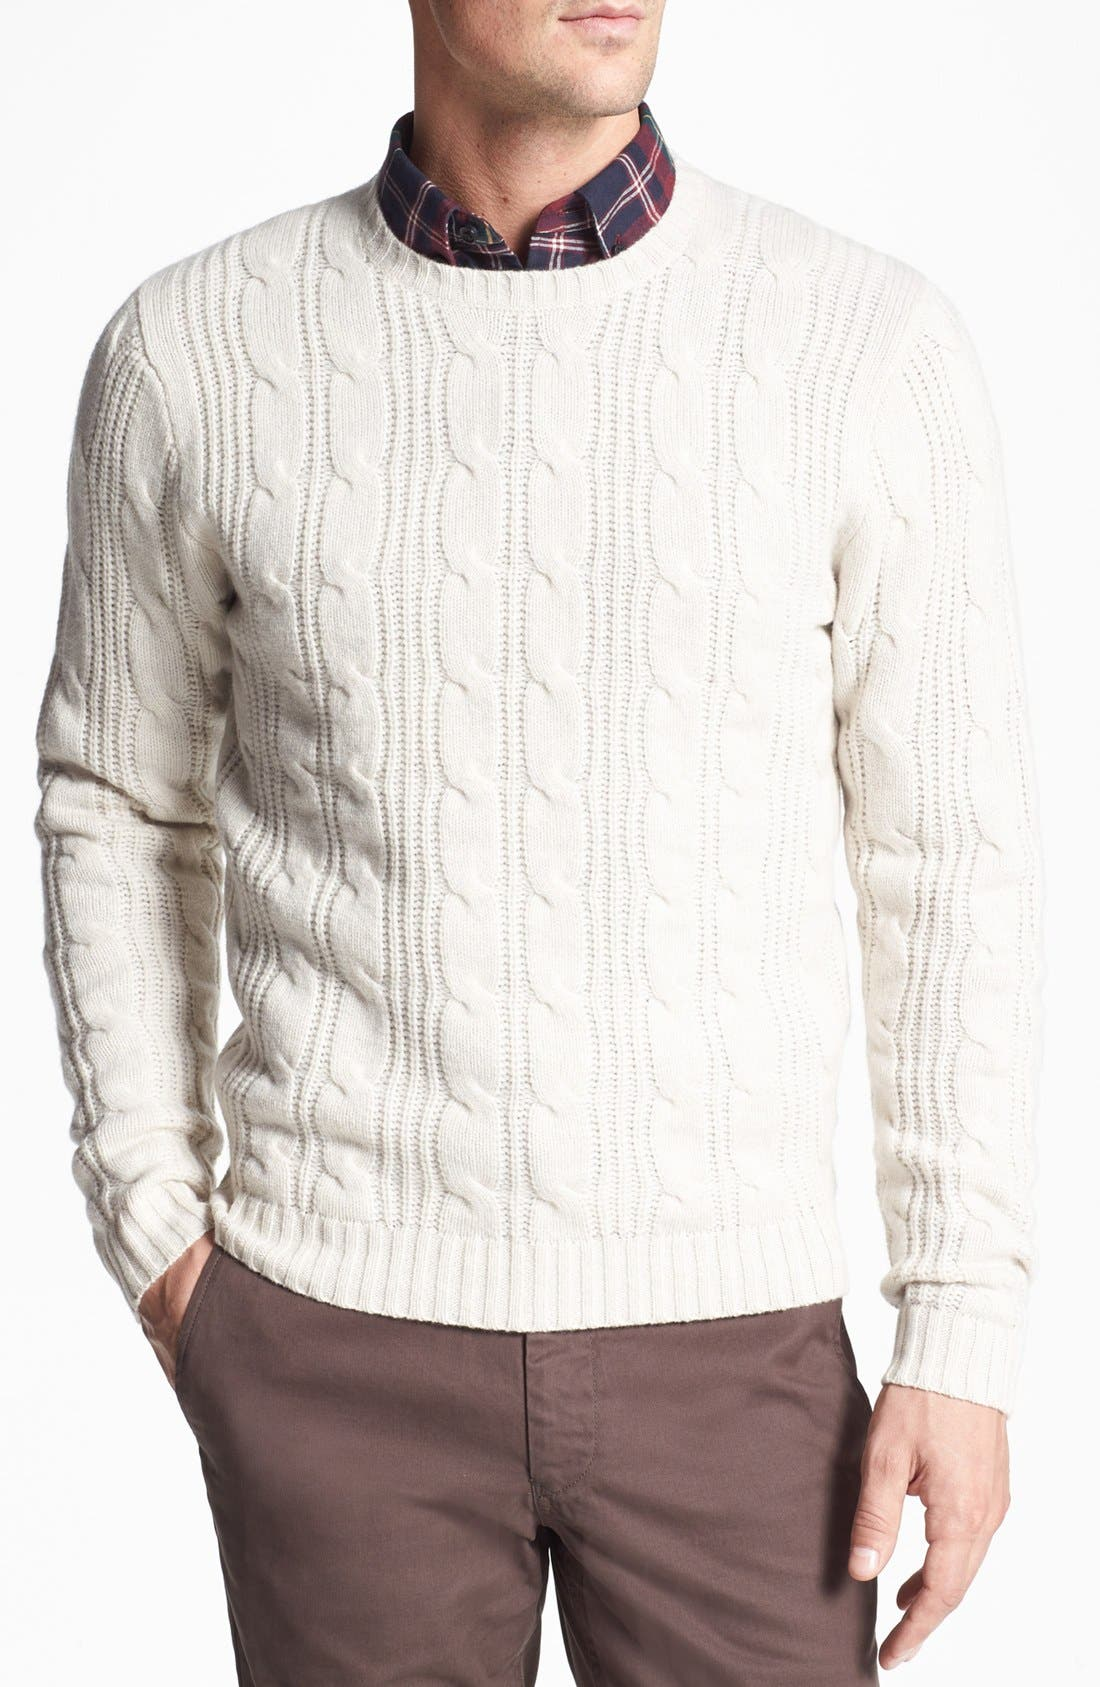 Alternate Image 1 Selected - Wallin & Bros. Cable Knit Sweater